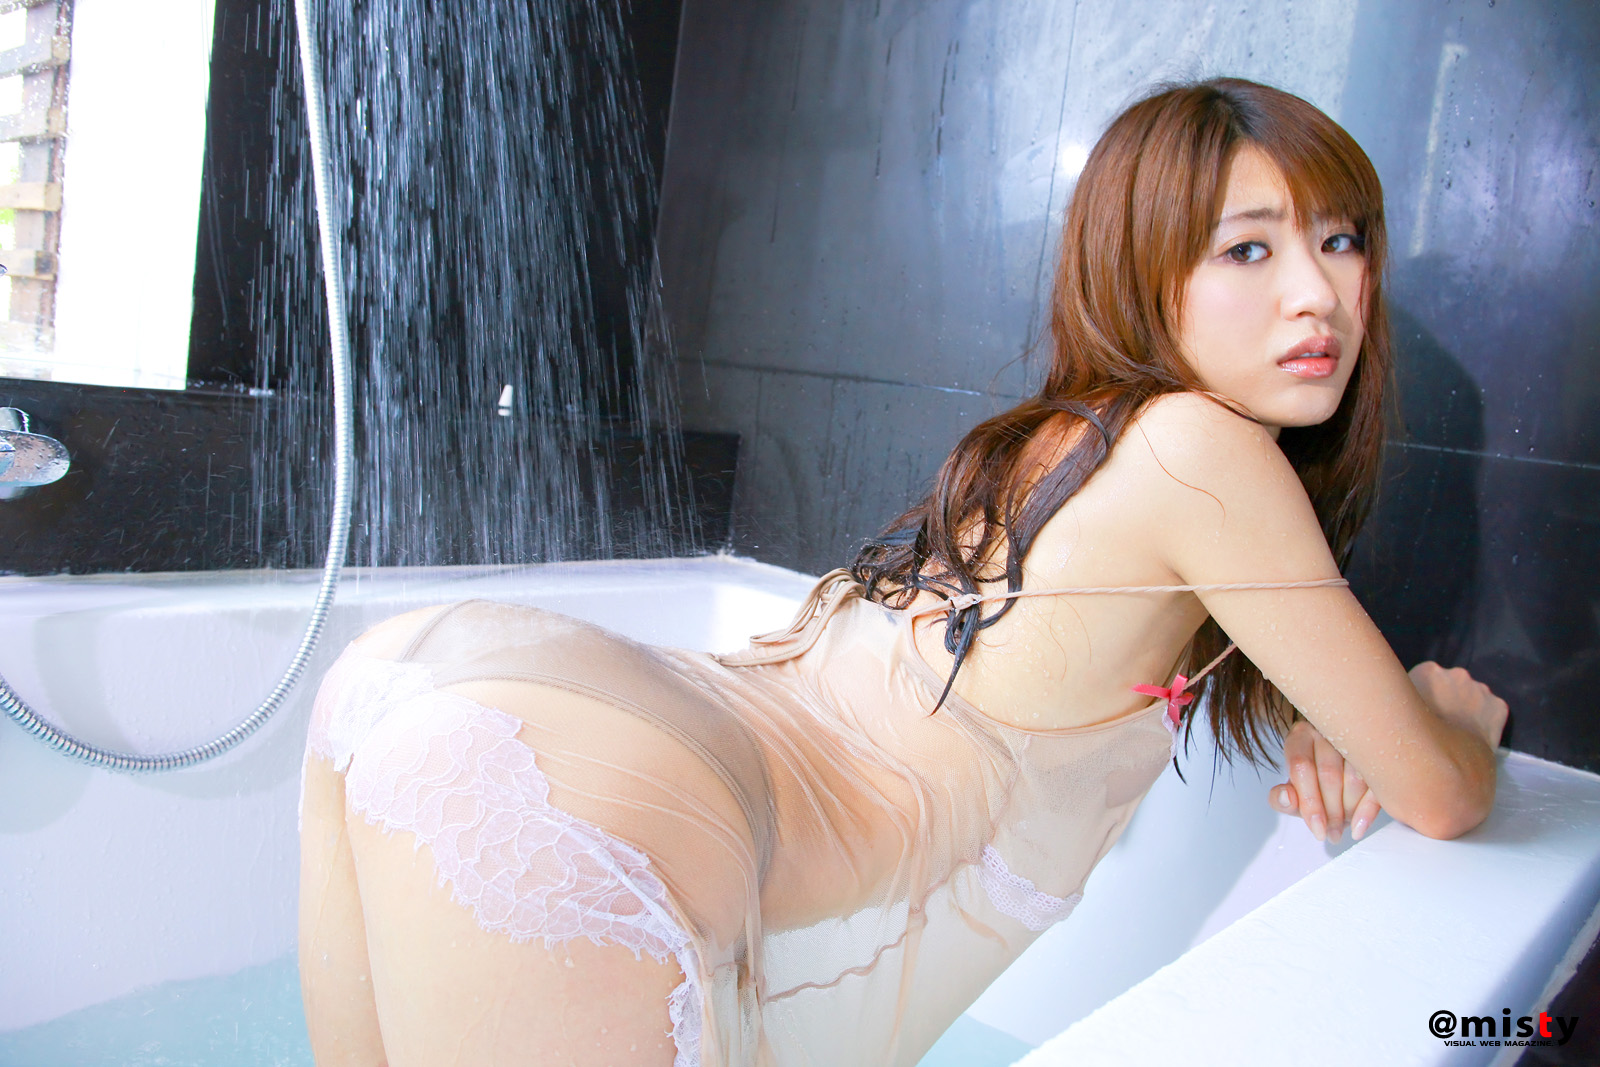 Japanese Girl Stock Images - Download 105,186 Photos